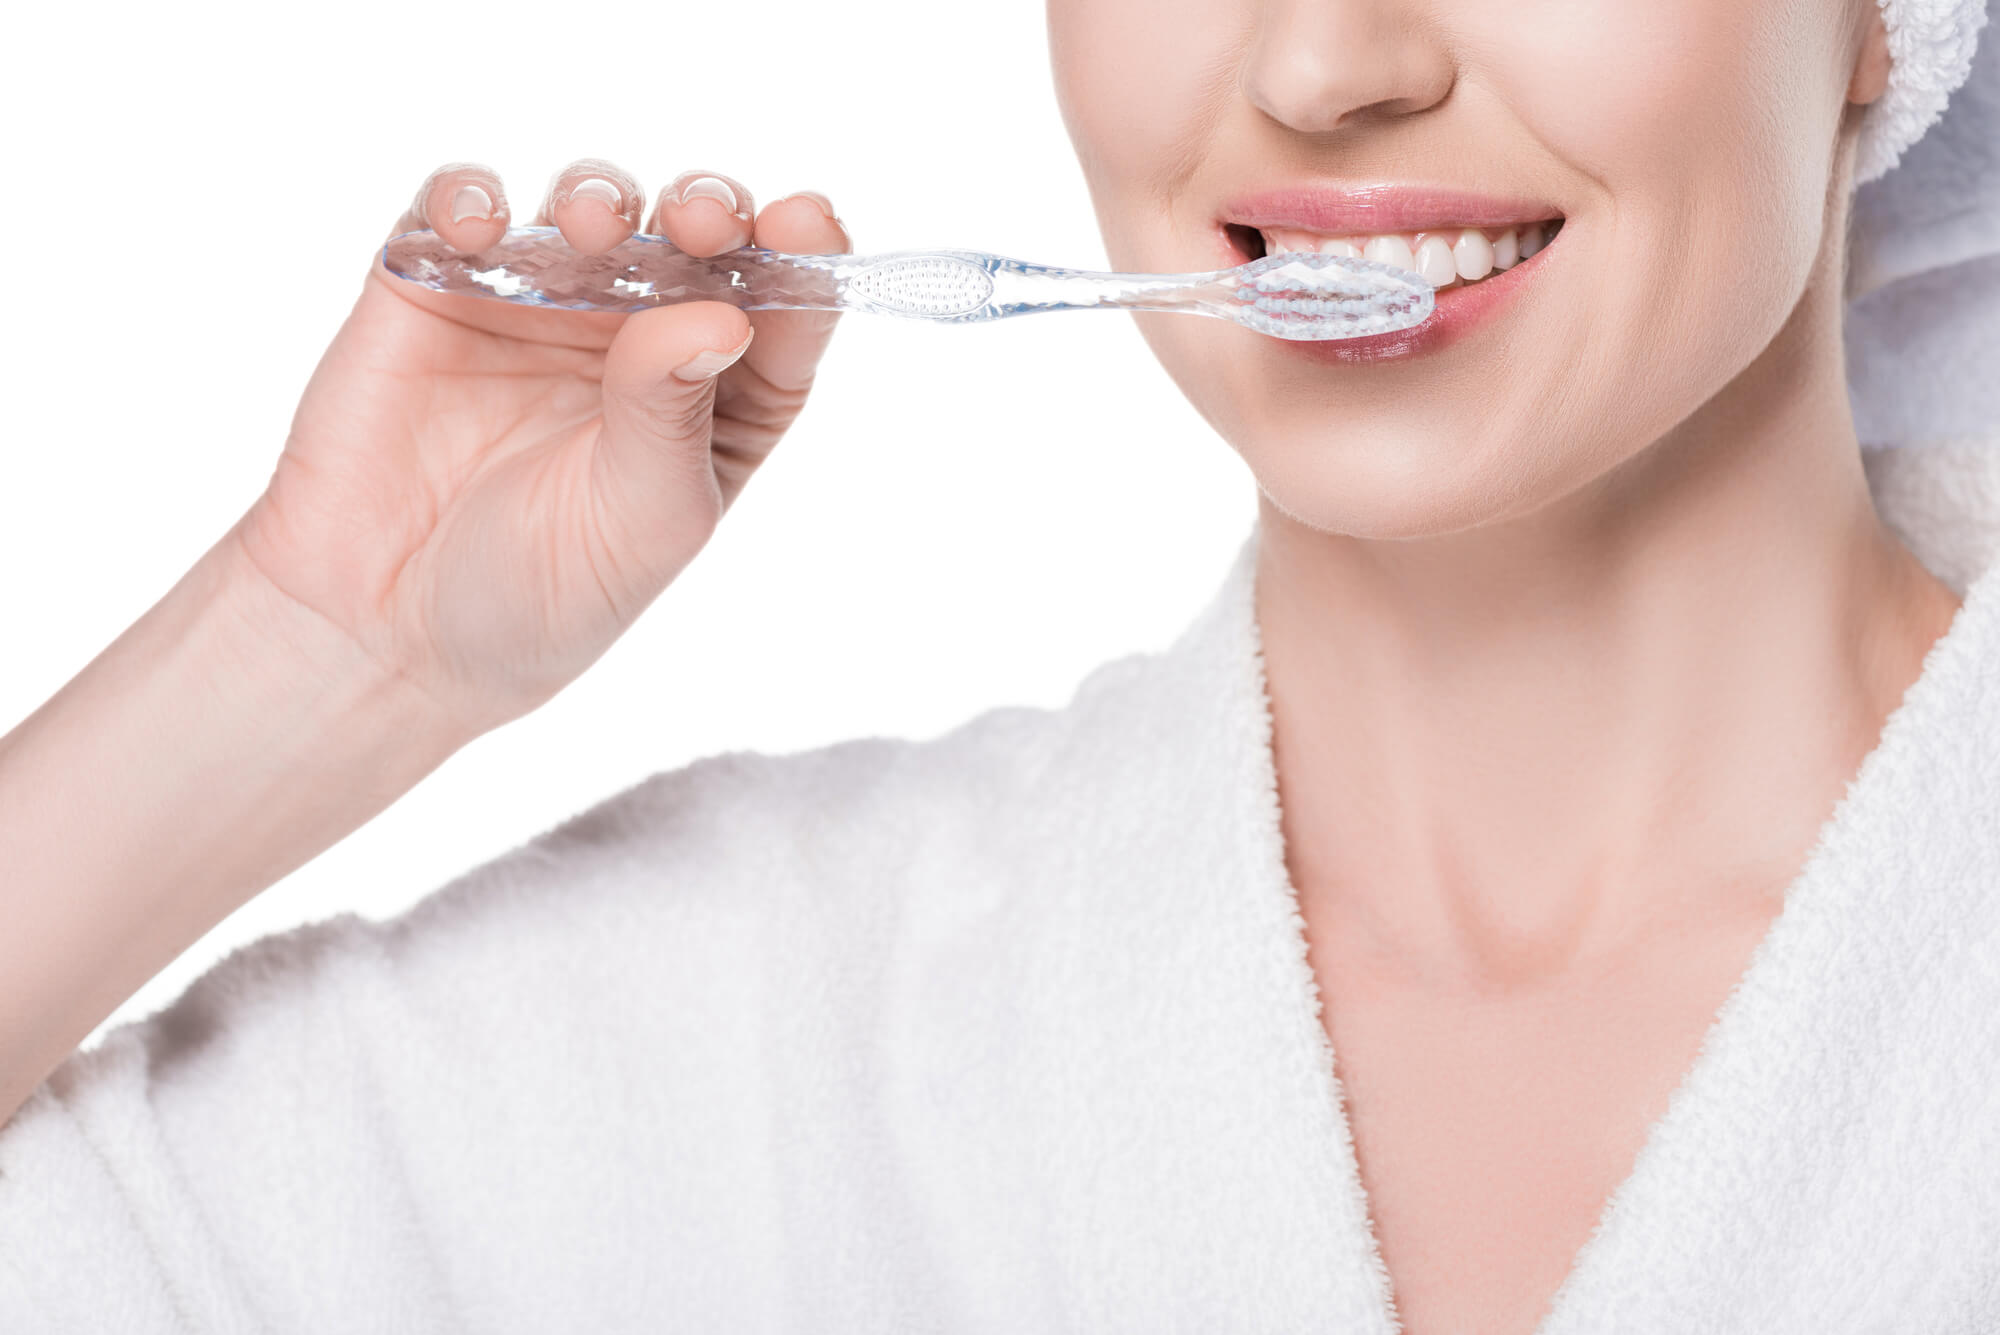 where can i find the best miami dentist?